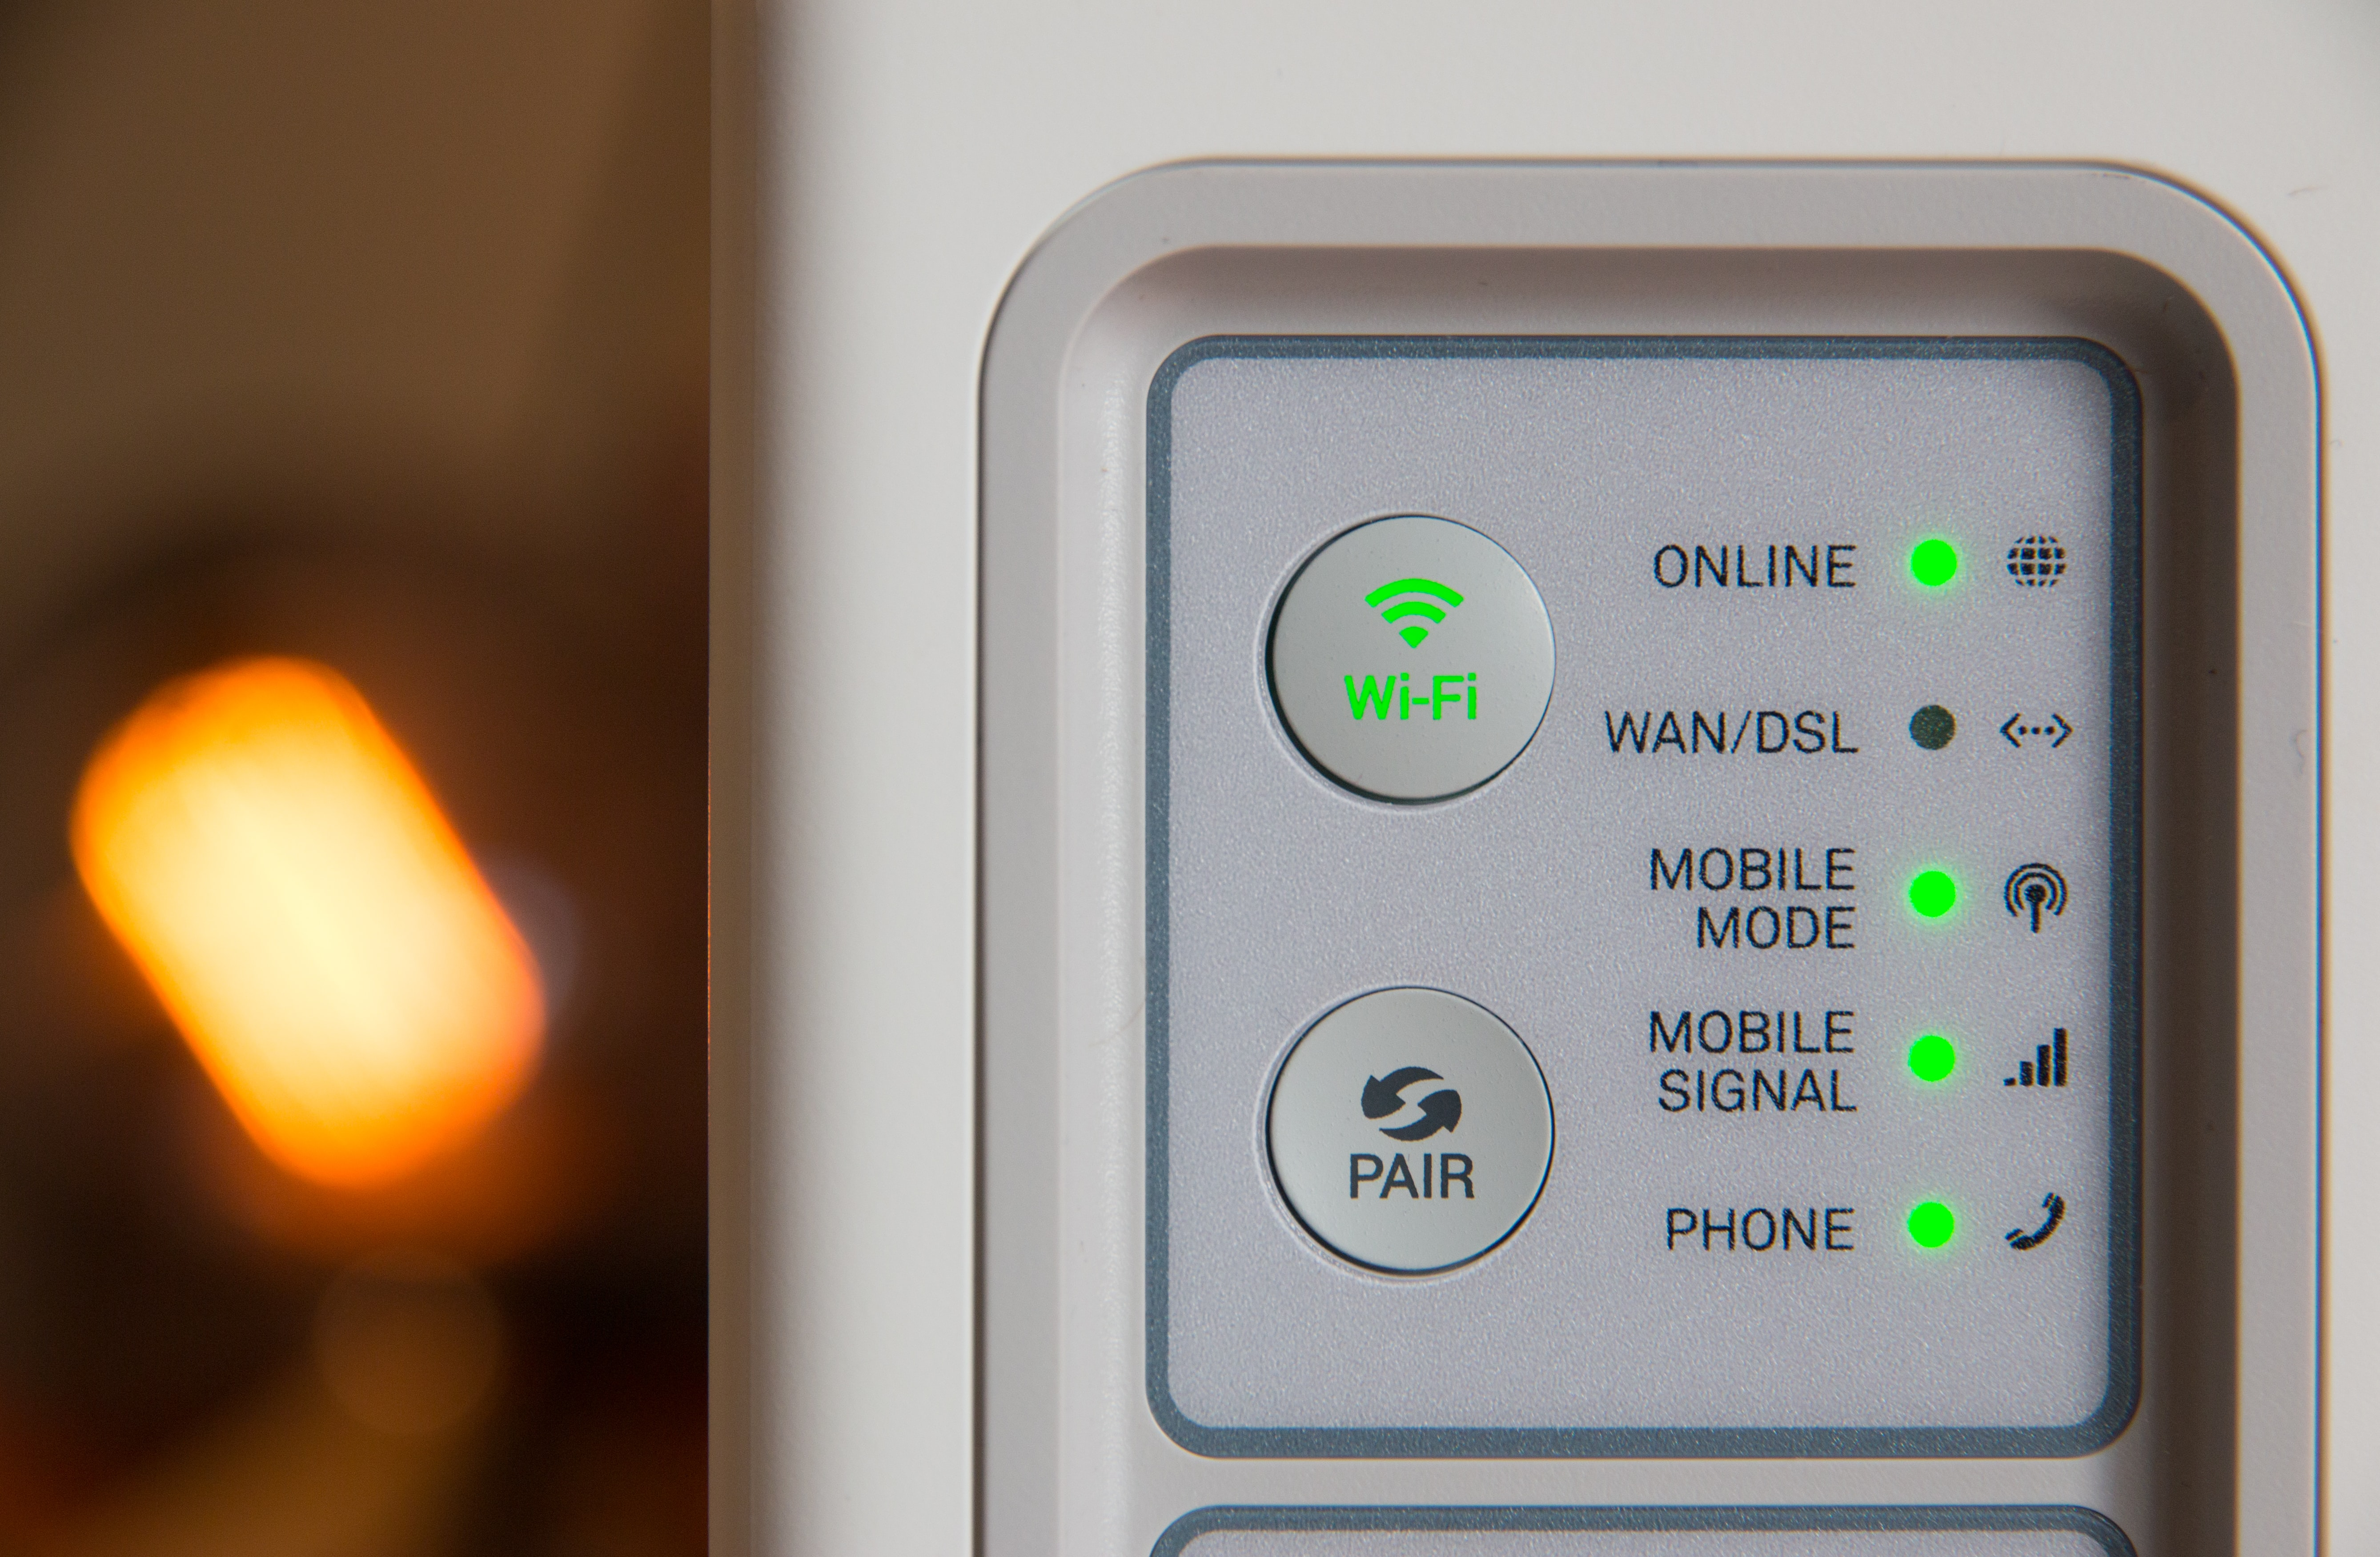 Internet router displaying Wi-Fi and phone connection